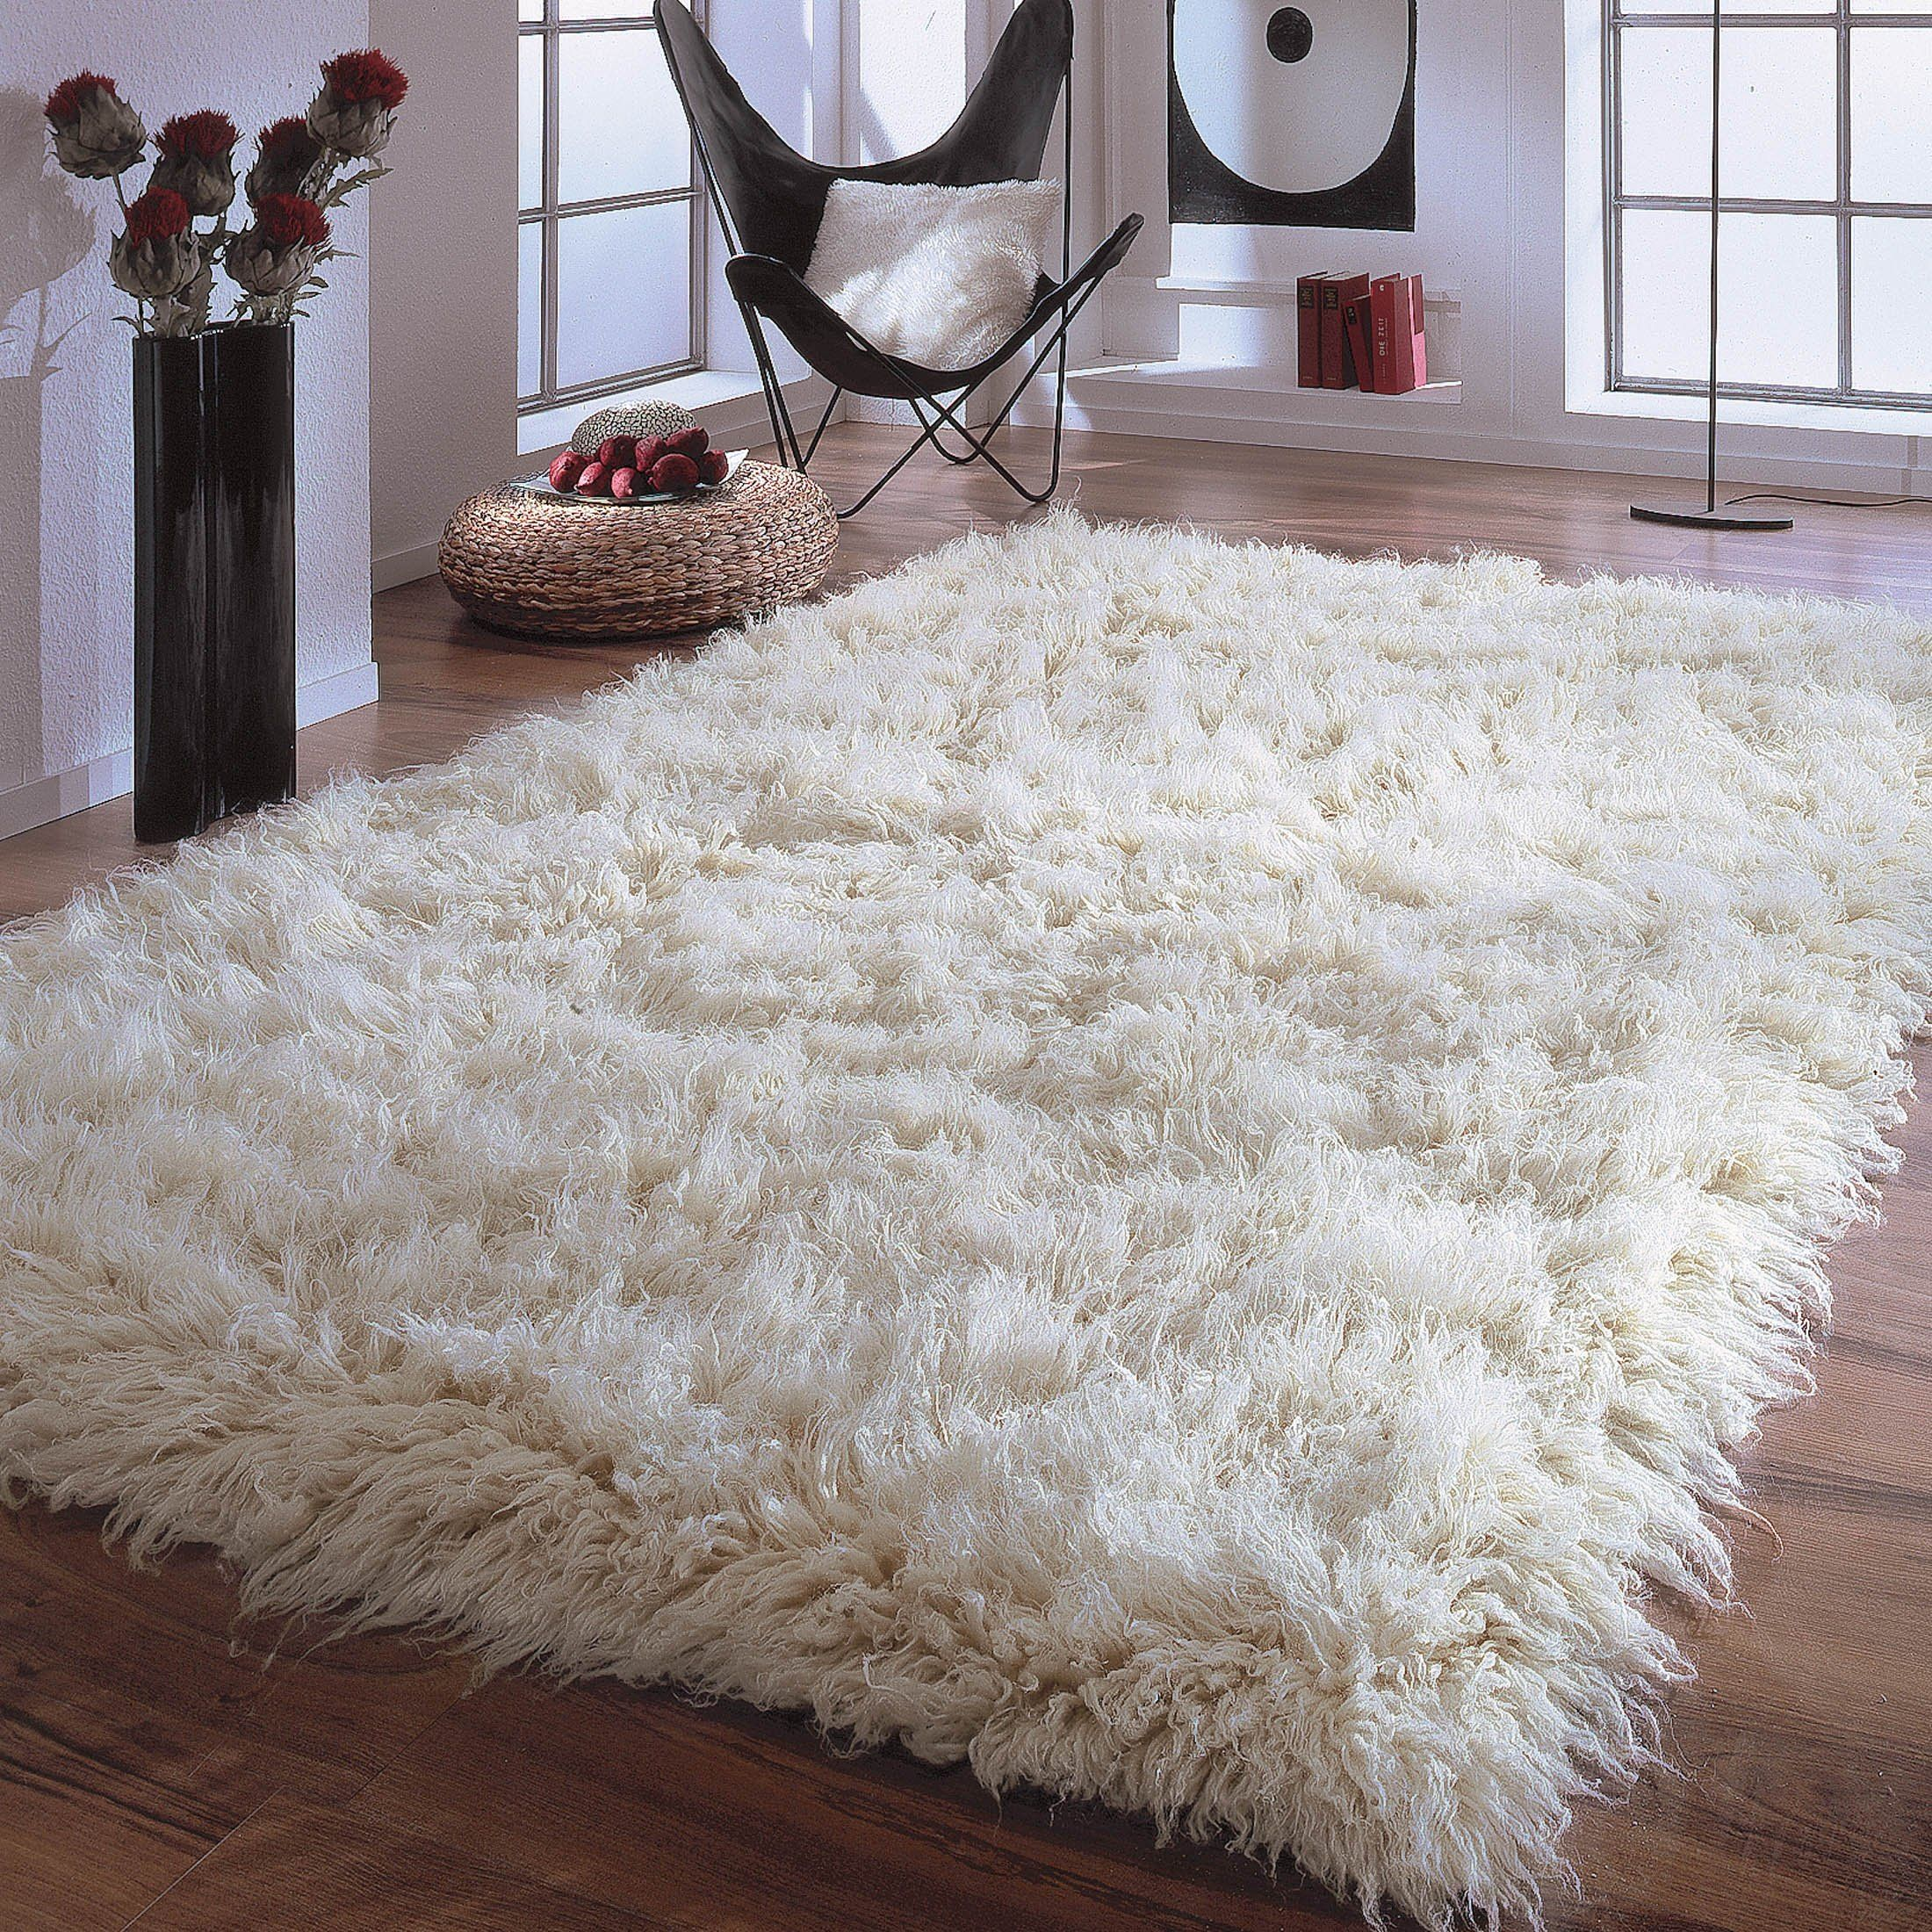 Flokati Premium This Is Like The Rug I Have M Not Sure How